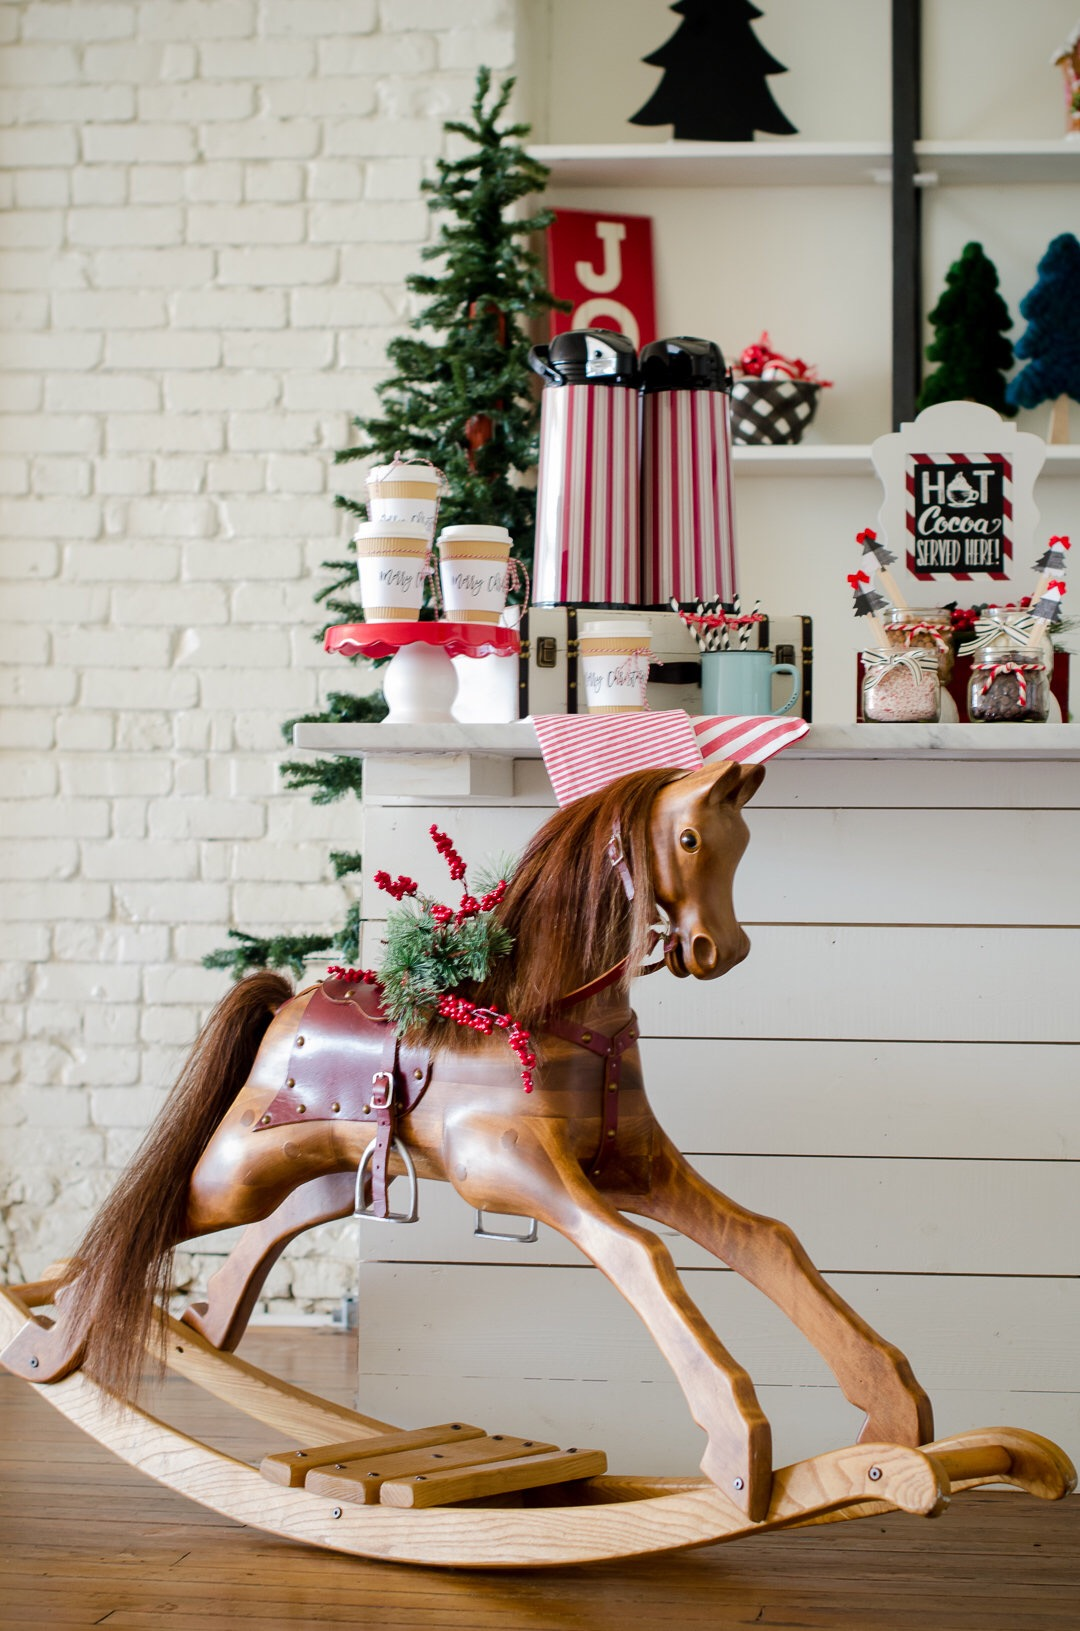 A hot cocoa station is perfect for any holiday party. And, when decorated with a vintage rocking horse in front, you know it's going to be fun. See more holiday party inspiration from Austin based party stylist Mint Event Design at www.minteventdesign.com #holidayparty #holidays #partyideas #christmasparty #holidaypartyideas #hotcocoabar #hotcocoa